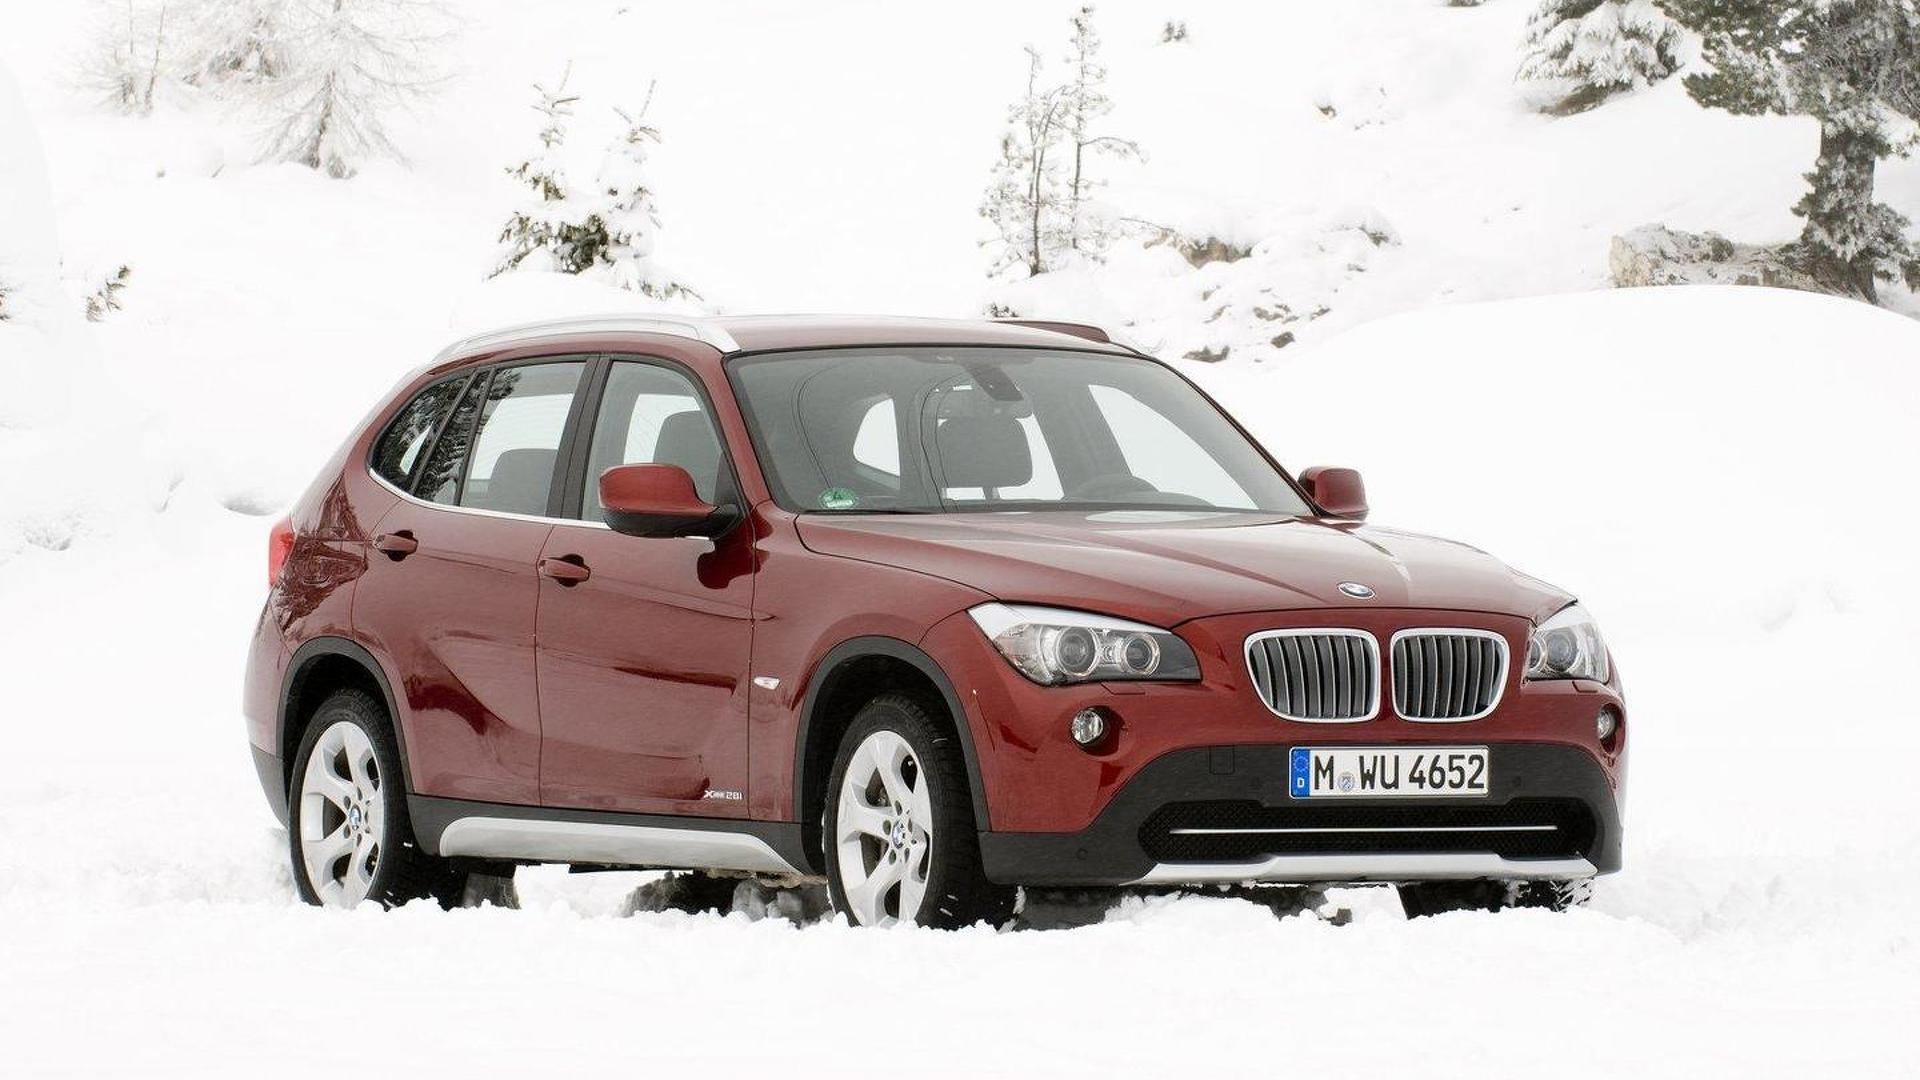 BMW to offer new 2.0 liter four-cylinder exclusively with turbo